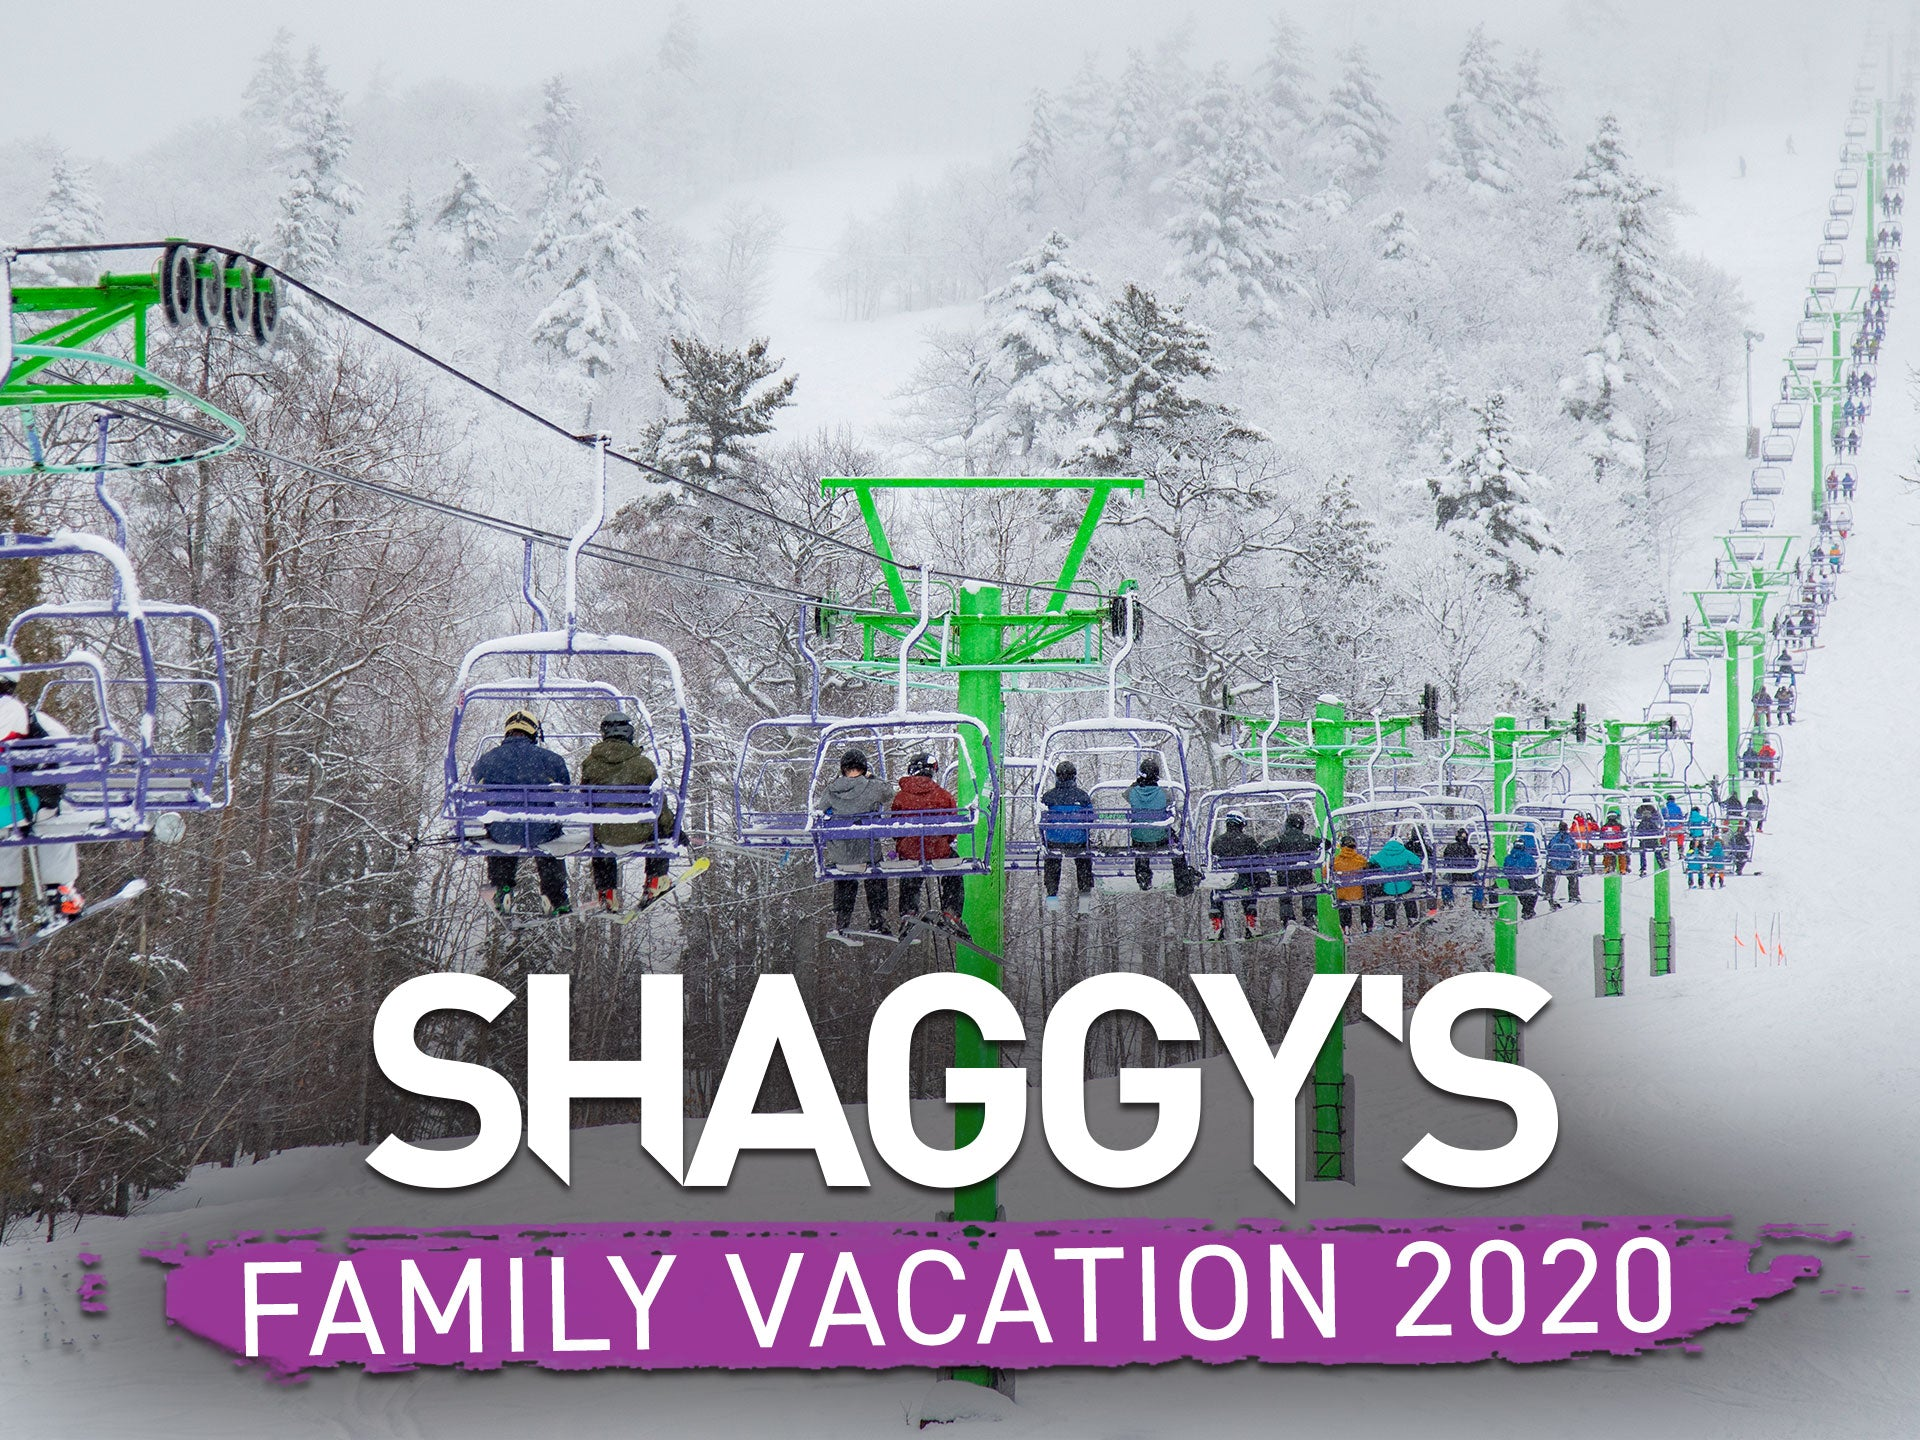 Shaggy's Family Vacation at Mount Bohemia - Extreme skiing in Michigan